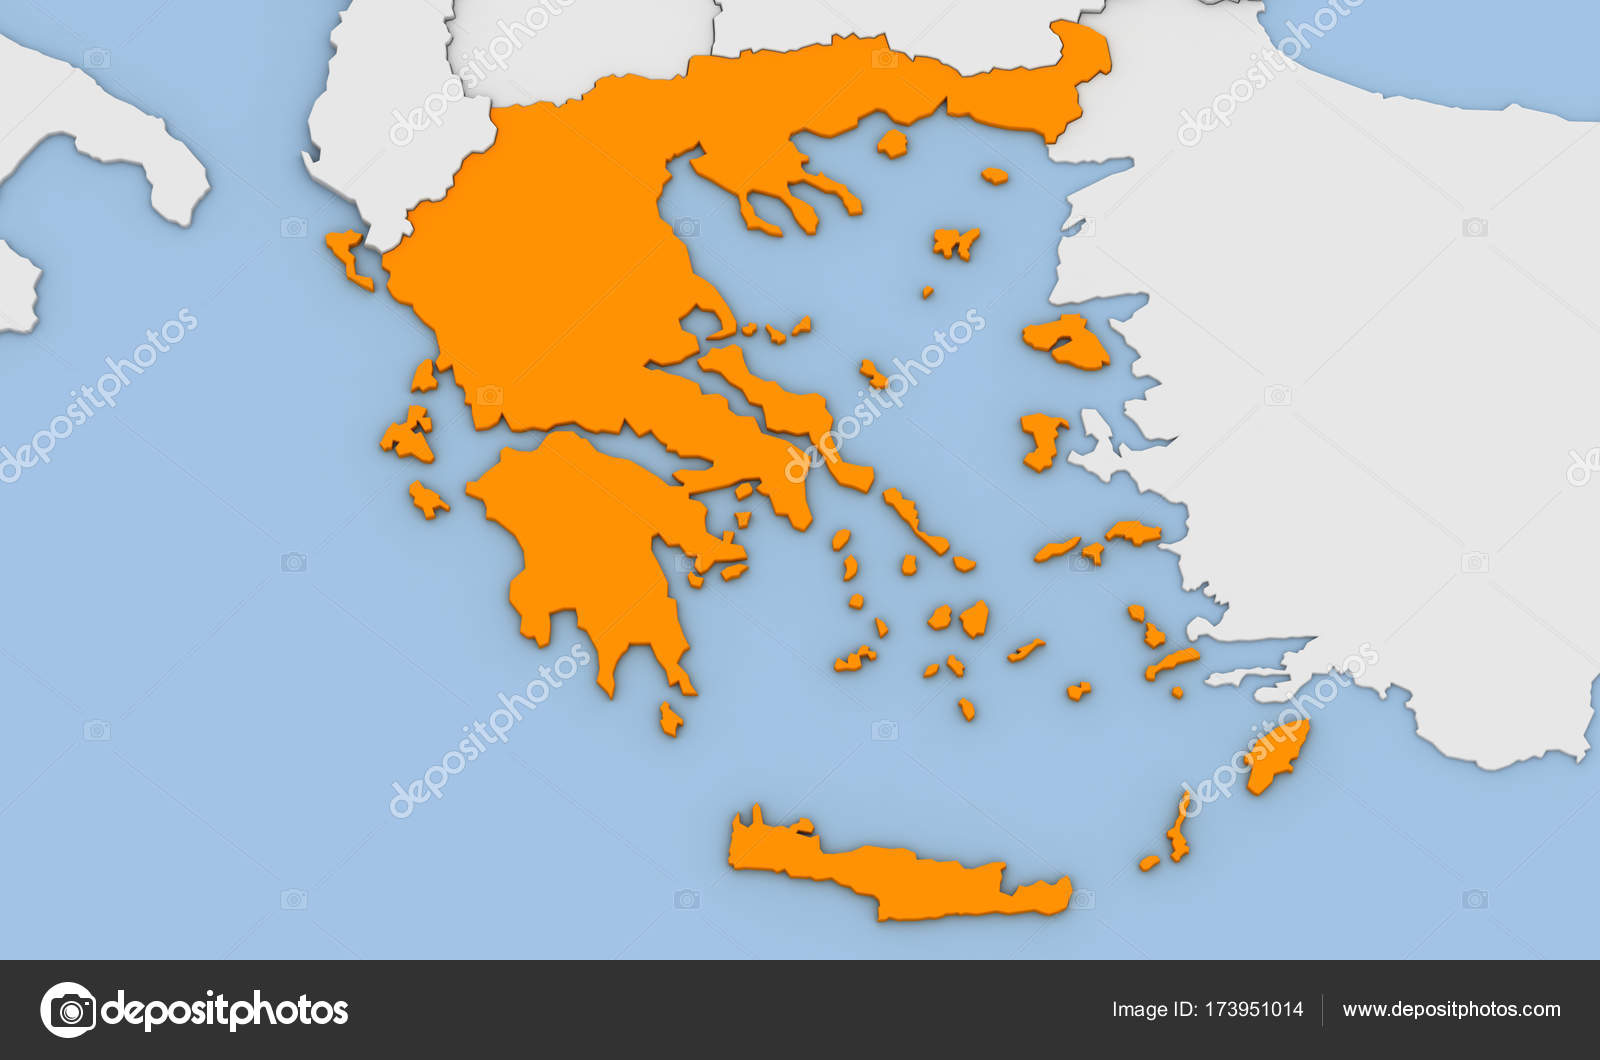 3d render of abstract map of greece stock photo oorka5 173951014 3d render of abstract map of greece highlighted in orange color photo by oorka5 gumiabroncs Choice Image